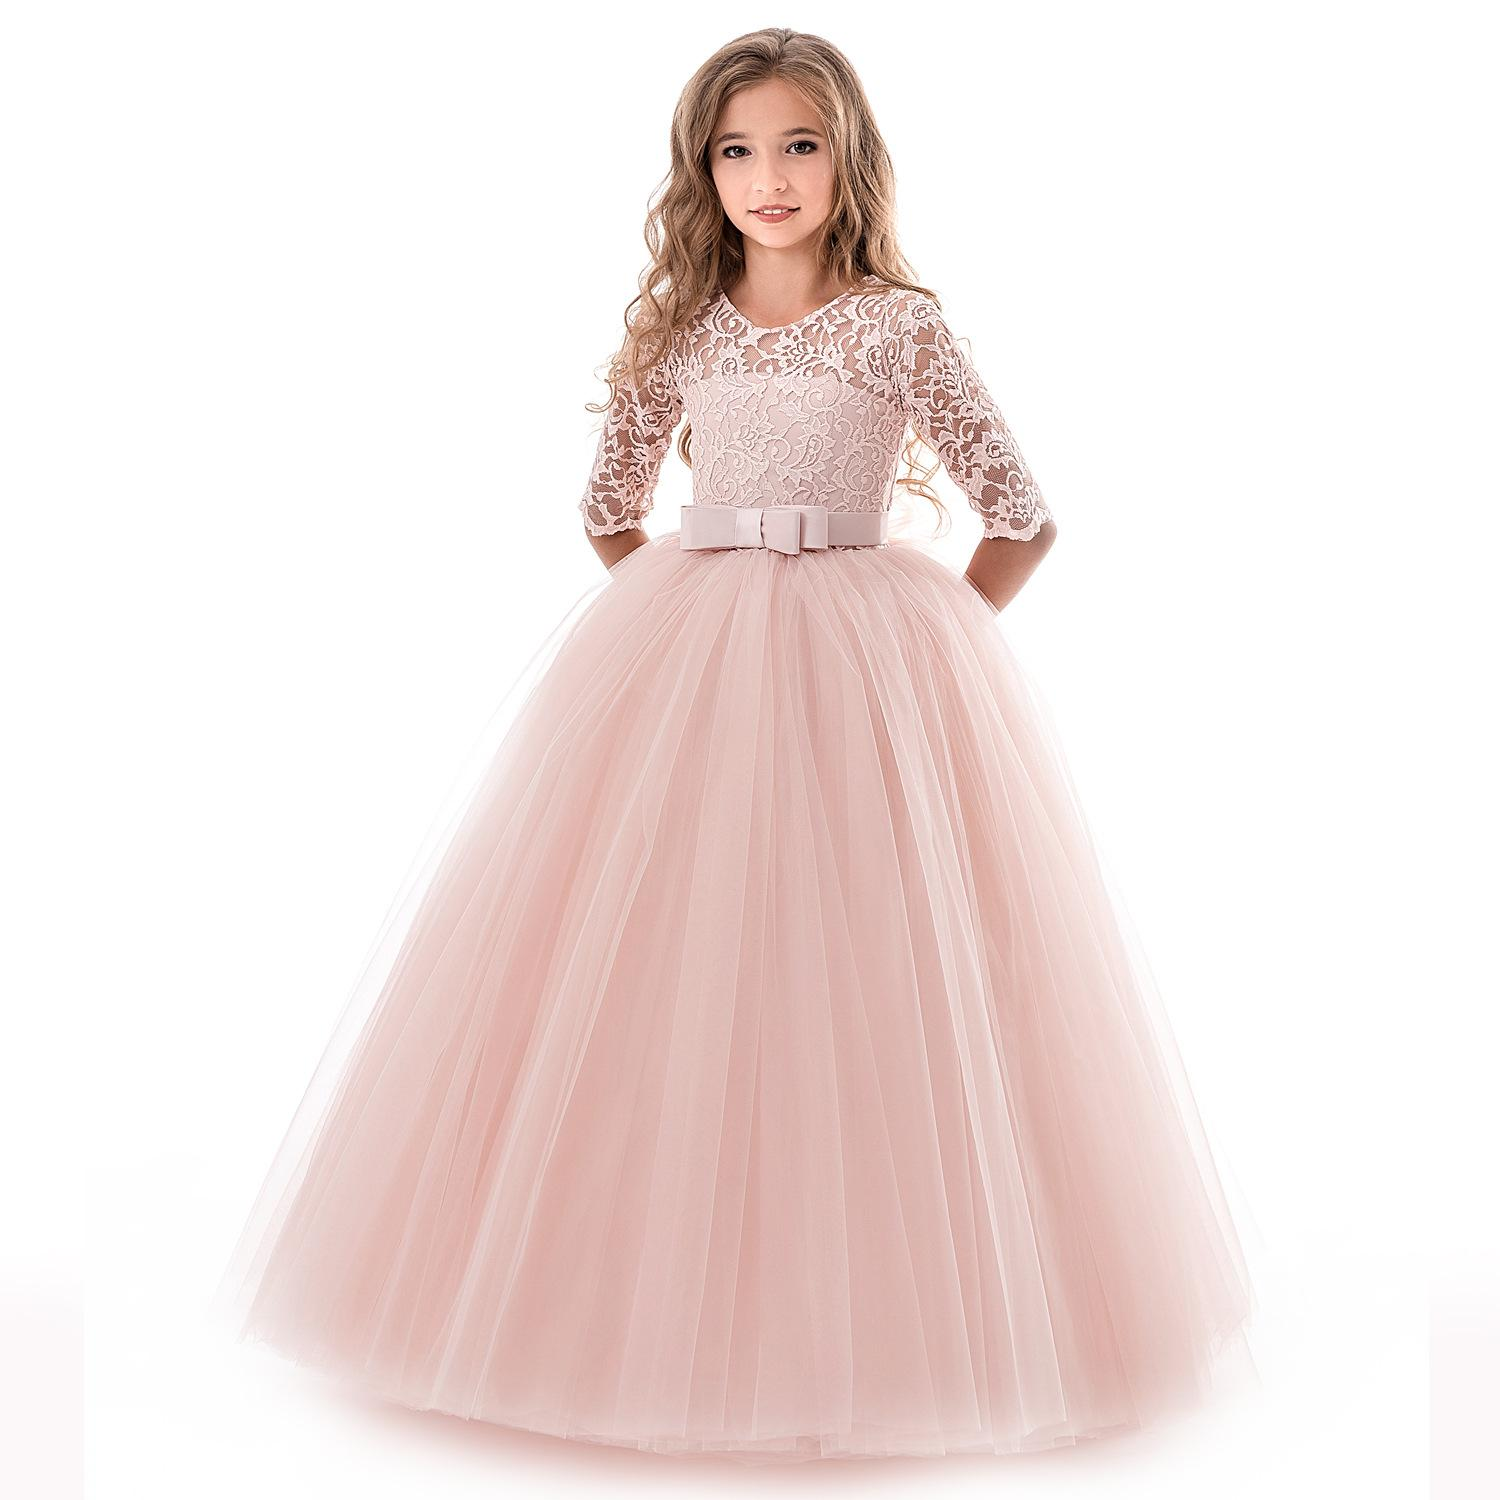 aadd34d86d7 Cheap Pink Flower Girls Dresses For Wedding Lace Applique Ruffles Kids  Formal Wear Long Beach Ball Little Girl Pageant Gowns 2019 Purple Dresses  For Girls ...